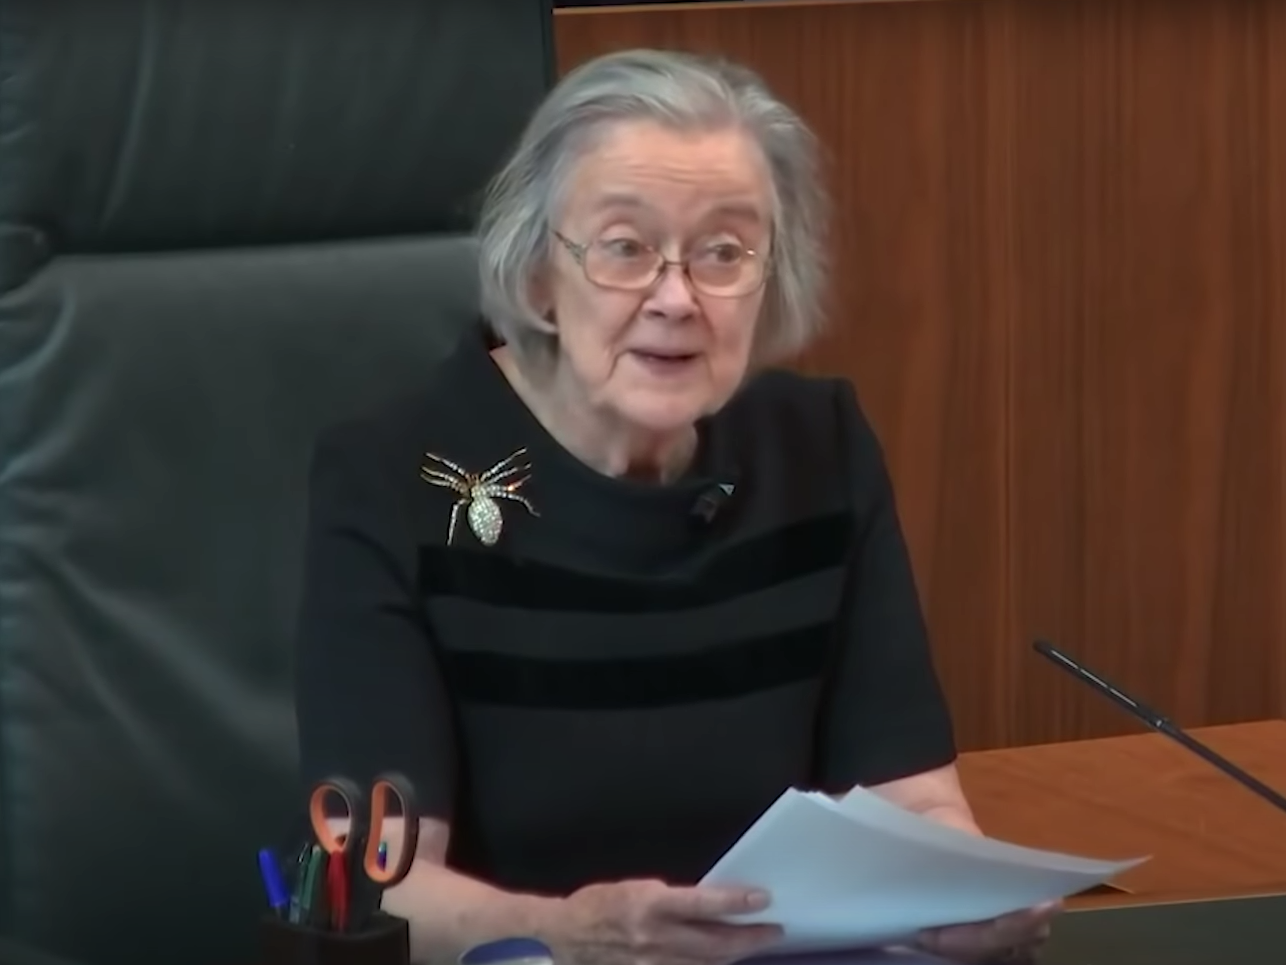 Lady Hale responds to claims spider brooch worn at prorogation ruling had a 'hidden message'